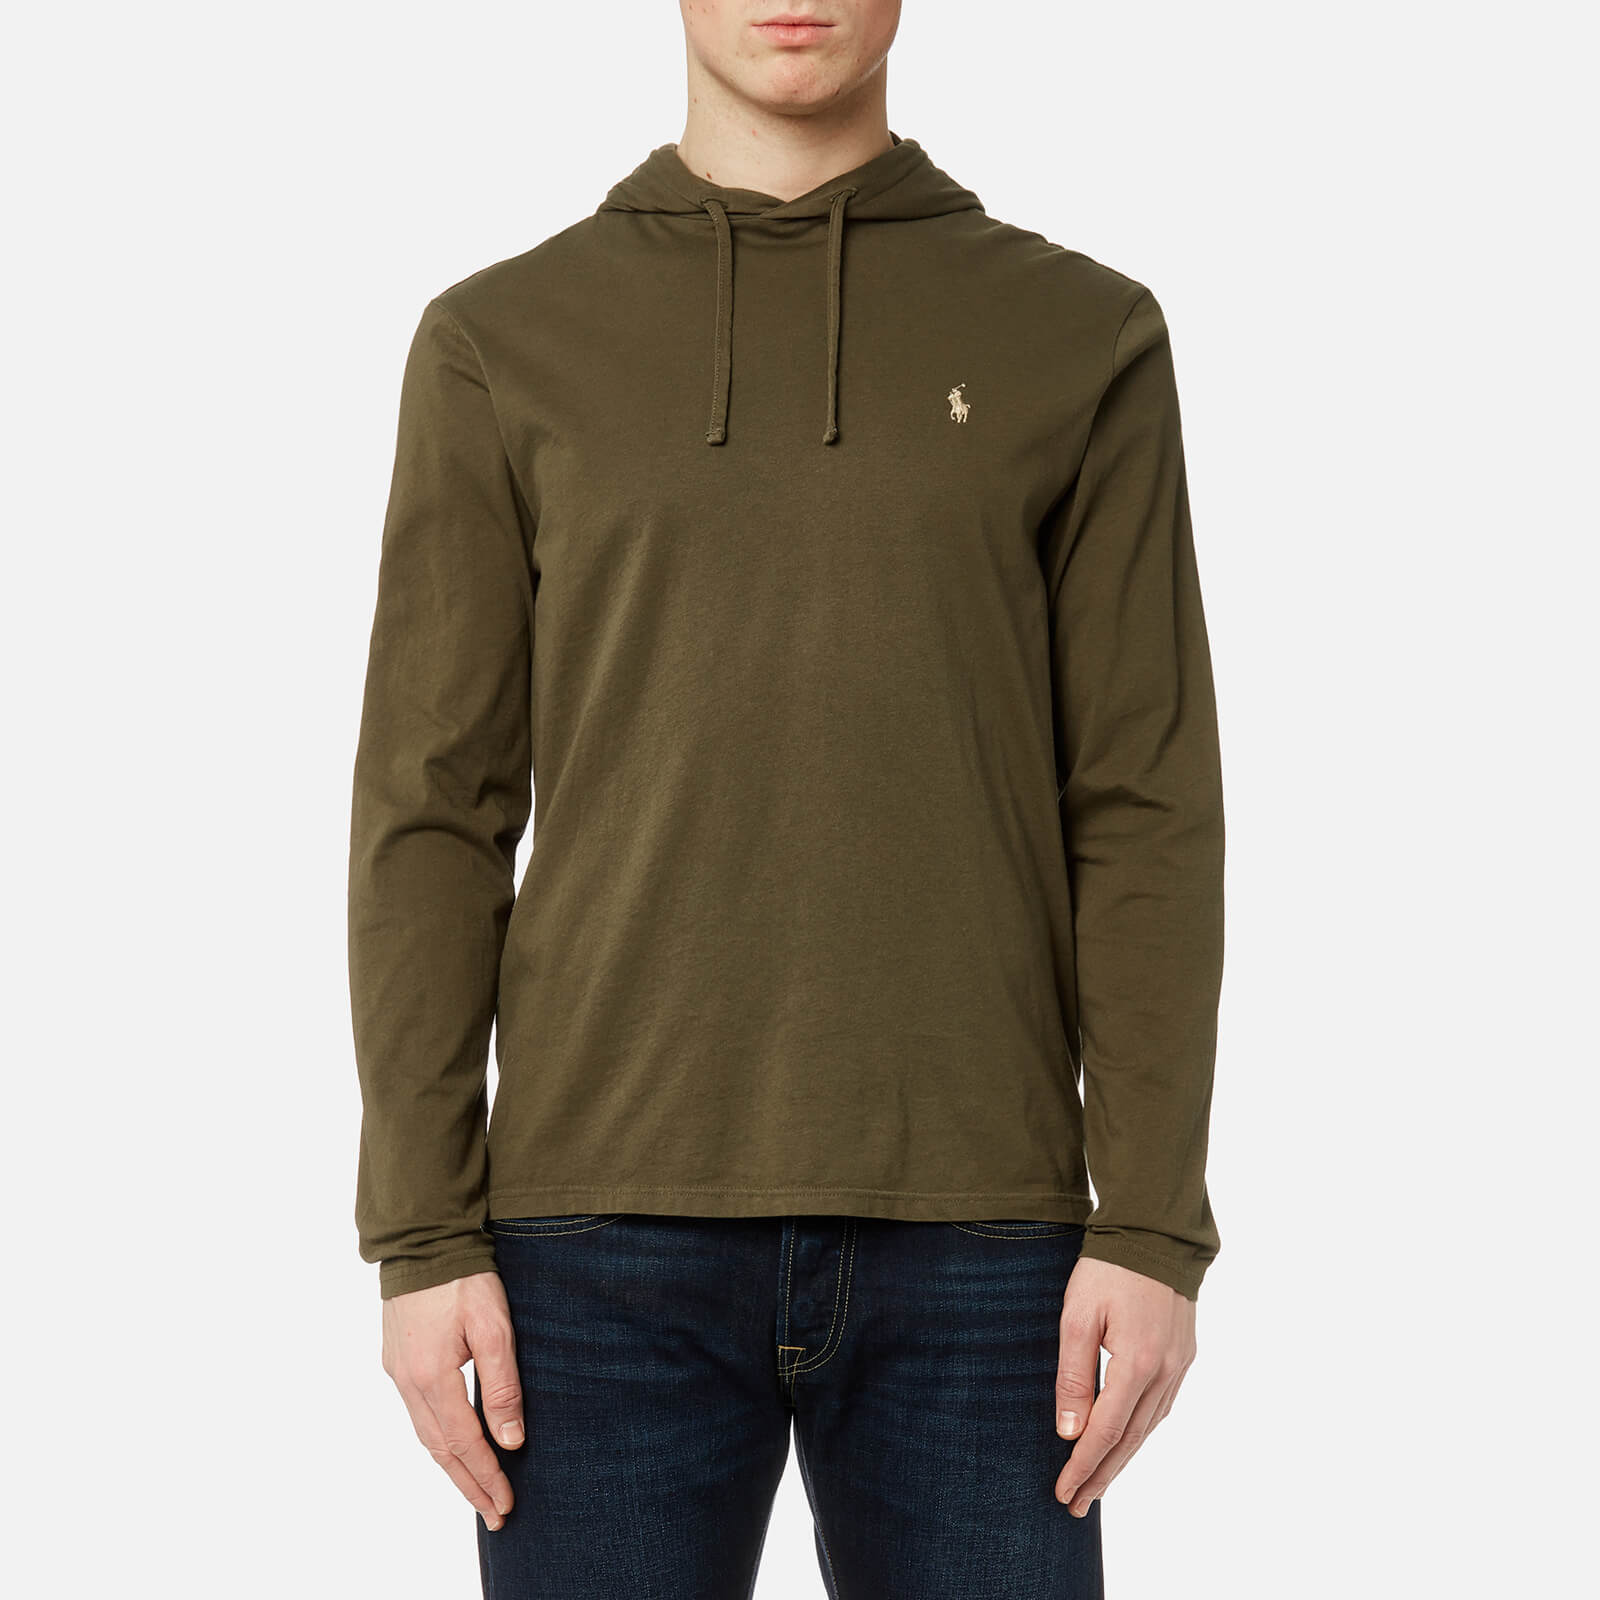 874398ff Polo Ralph Lauren Men's Hooded Long Sleeve T-Shirt - Defender Green - Free  UK Delivery over £50